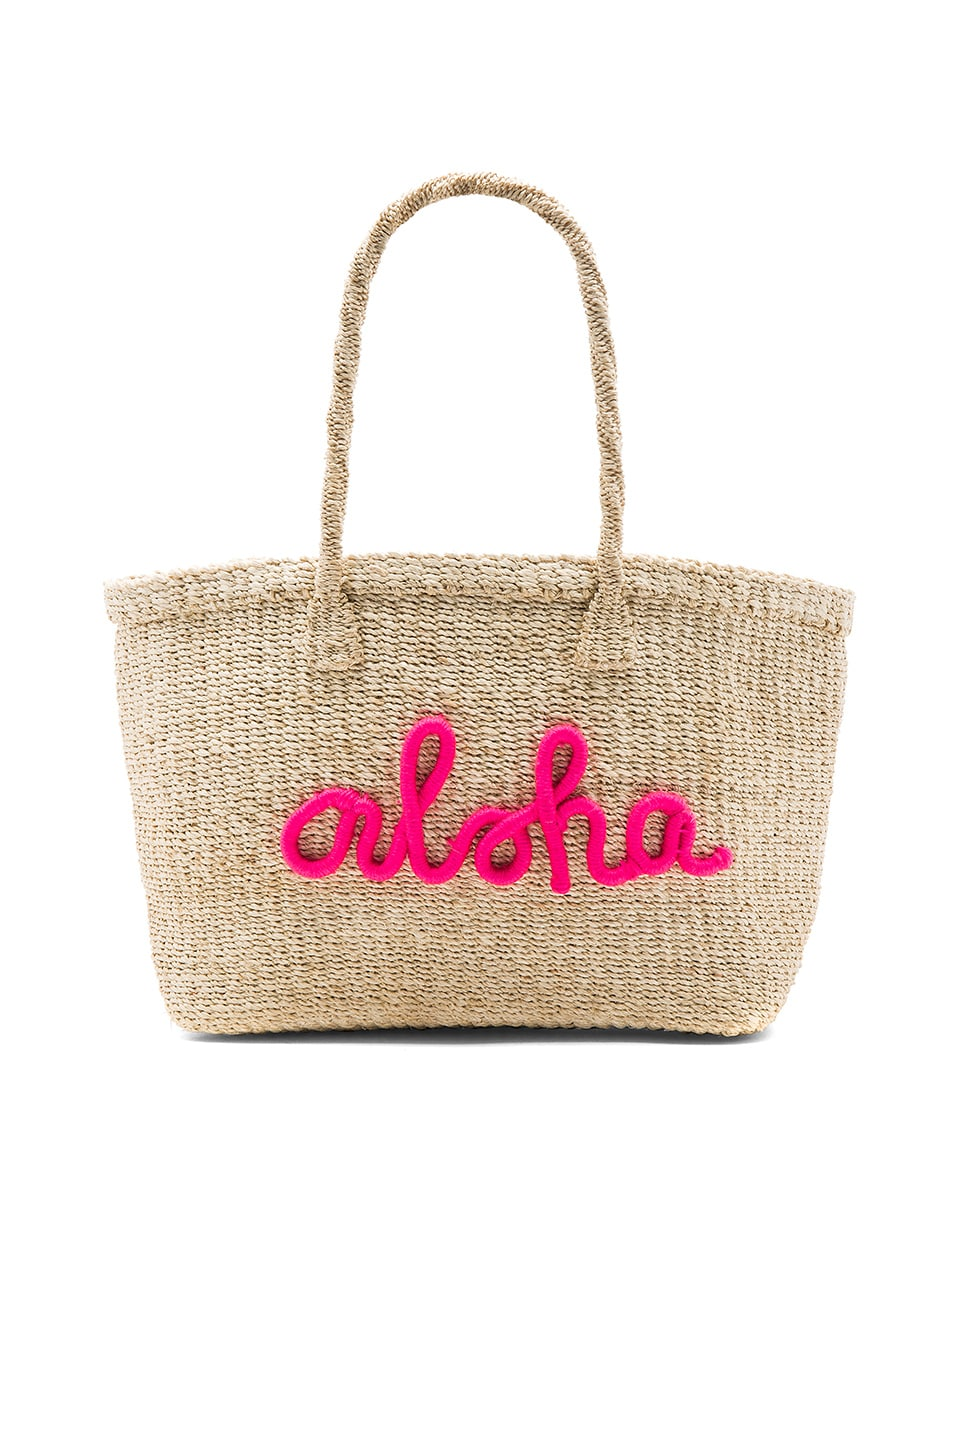 KAYU x REVOLVE Aloha Tote Bag in Hot Pink